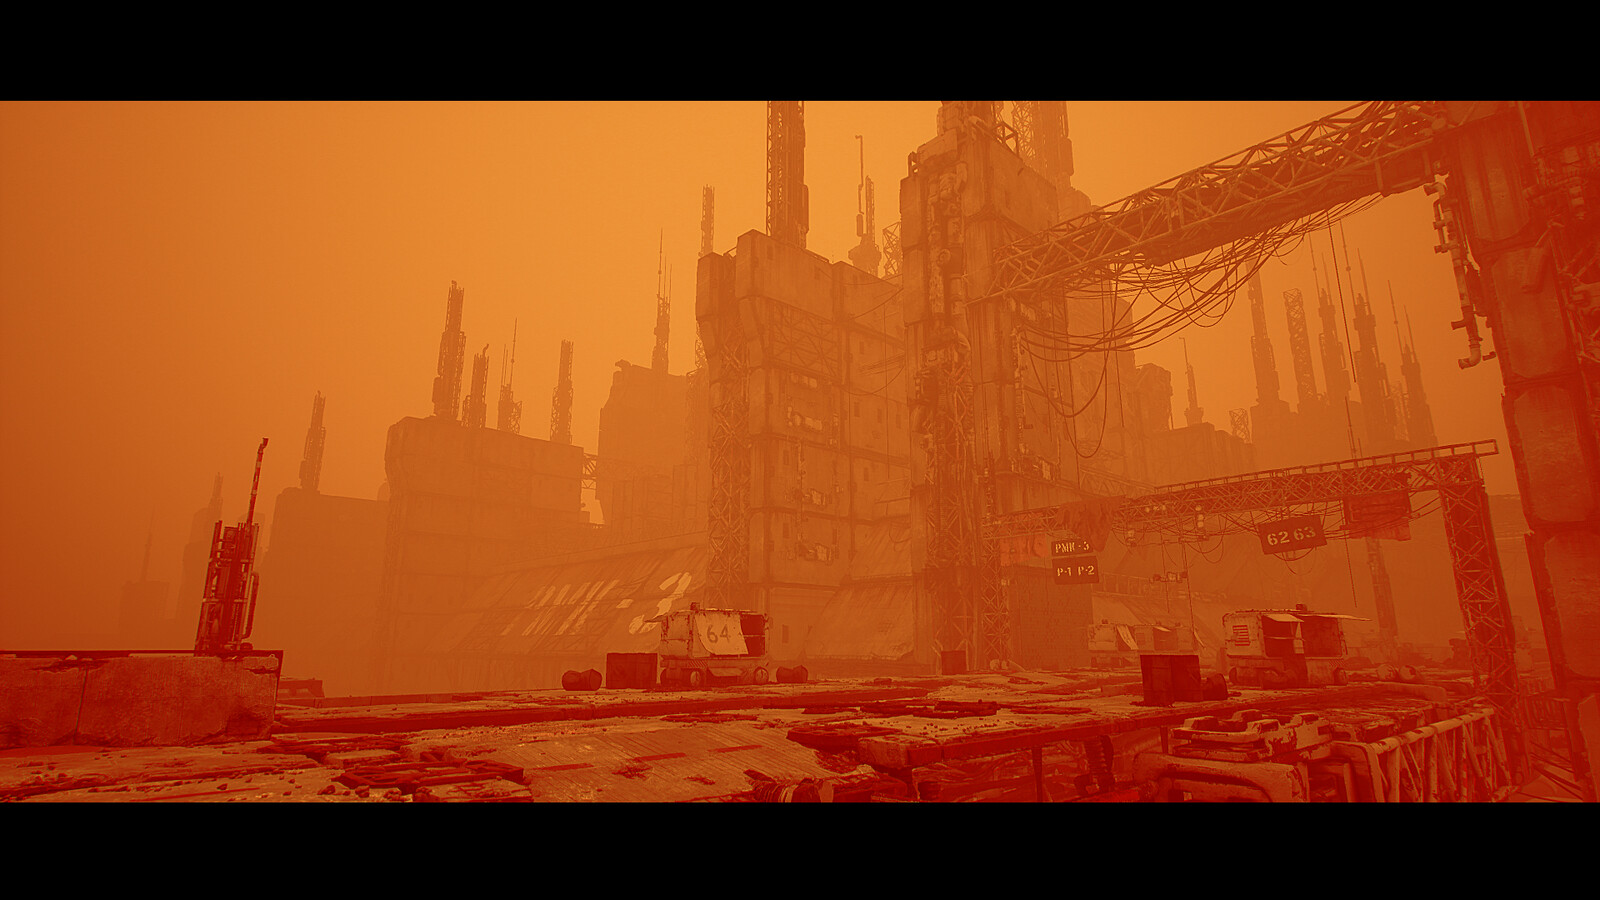 going for a Blade runner 2049 look here